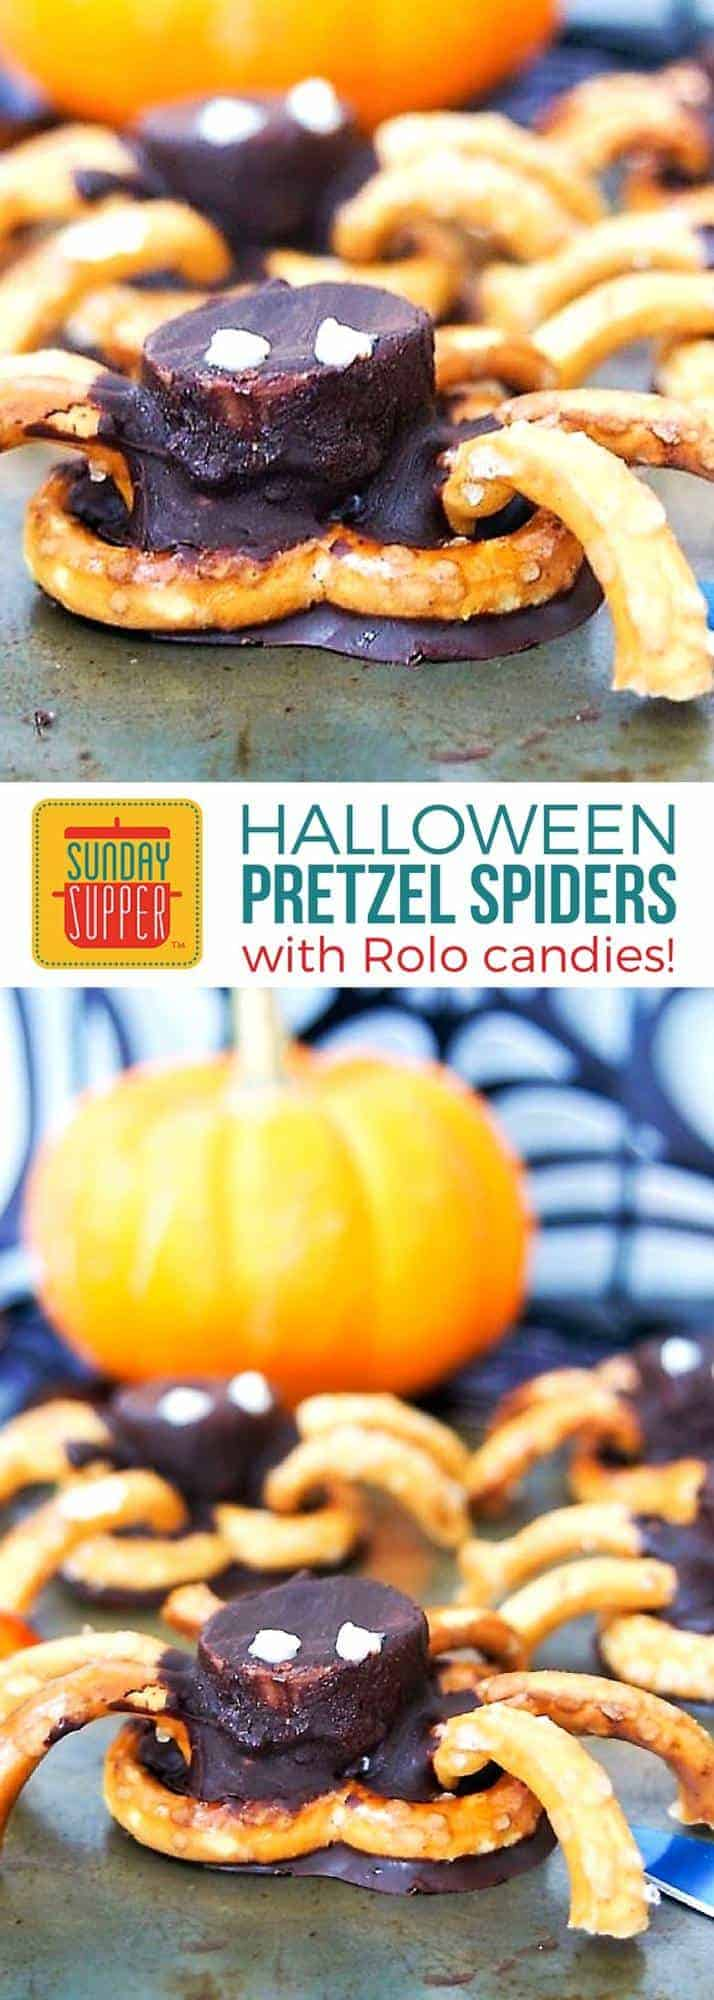 Every Halloween party needs some fun Halloween finger foods! 4-ingredient chocolate pretzel spiders are easy, quick & a tasty sweet-salty mix. Have fun in the kitchen with the kids this Halloween with this fun and tasty craft treat that is just creepy enough for giggles and not too scary. #SundaySupper #HalloweenFingerFoods #HolidayRecipe